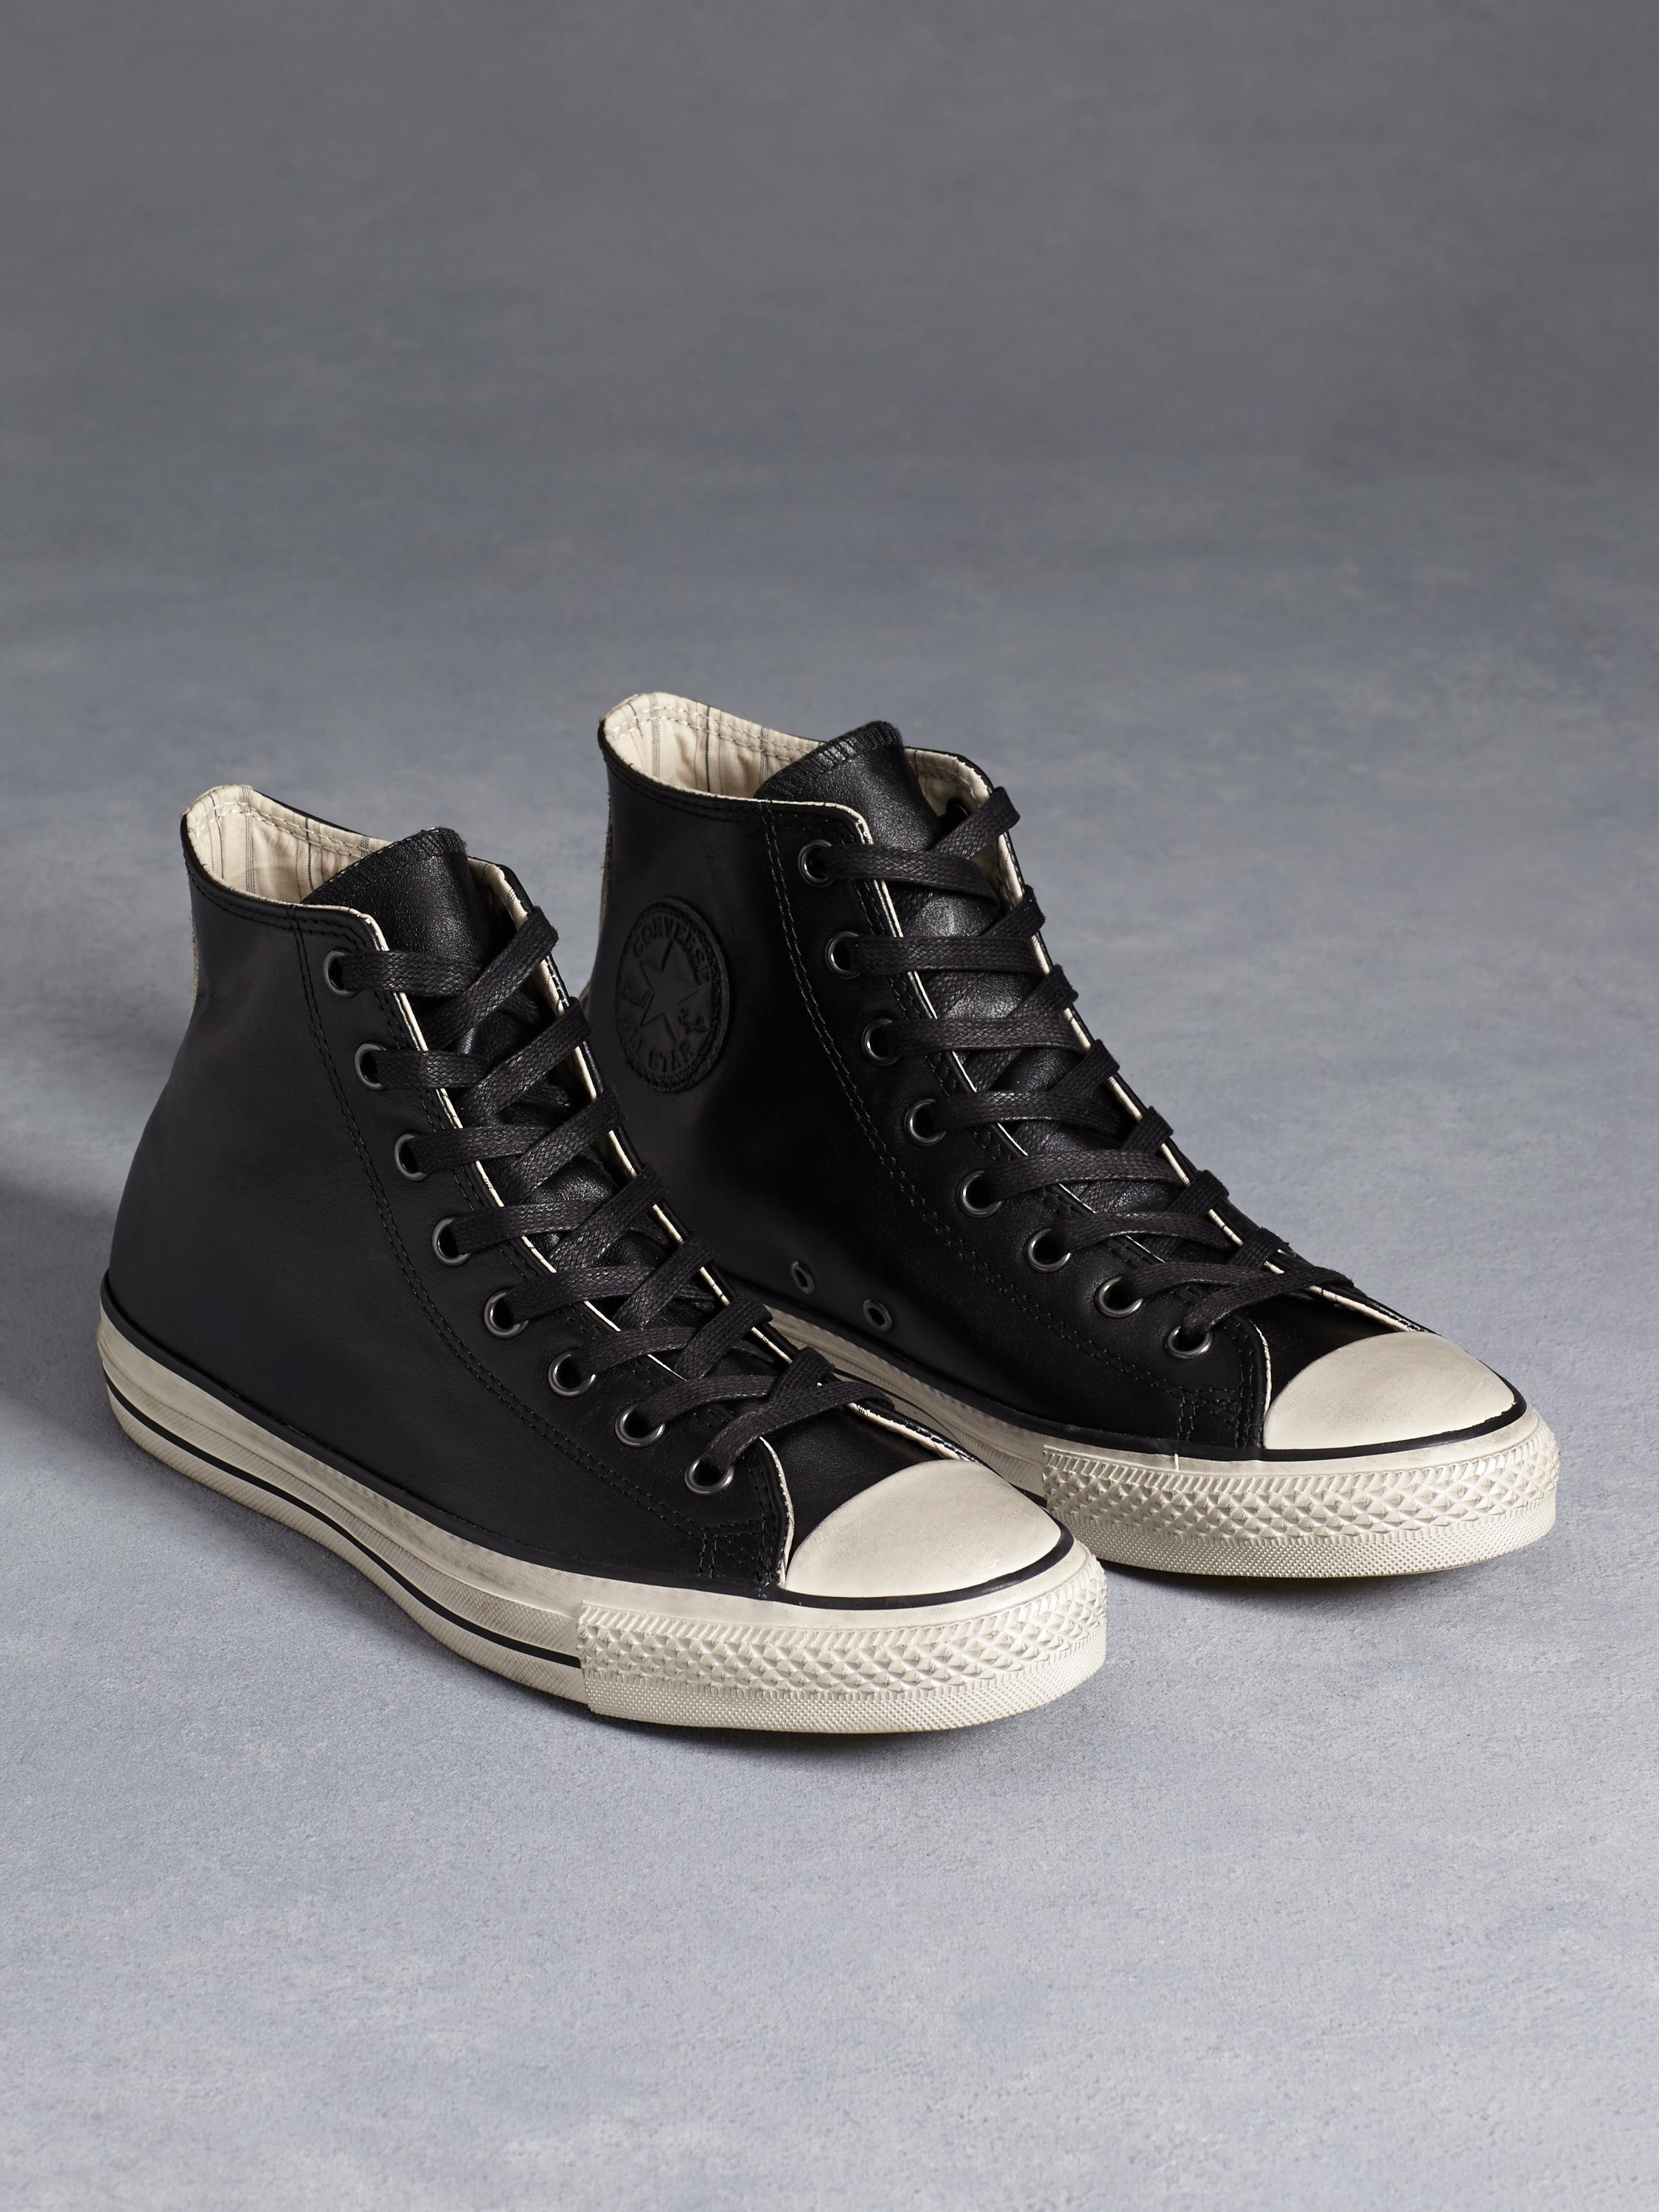 All Star Burnished Leather Chuck Taylor in Black